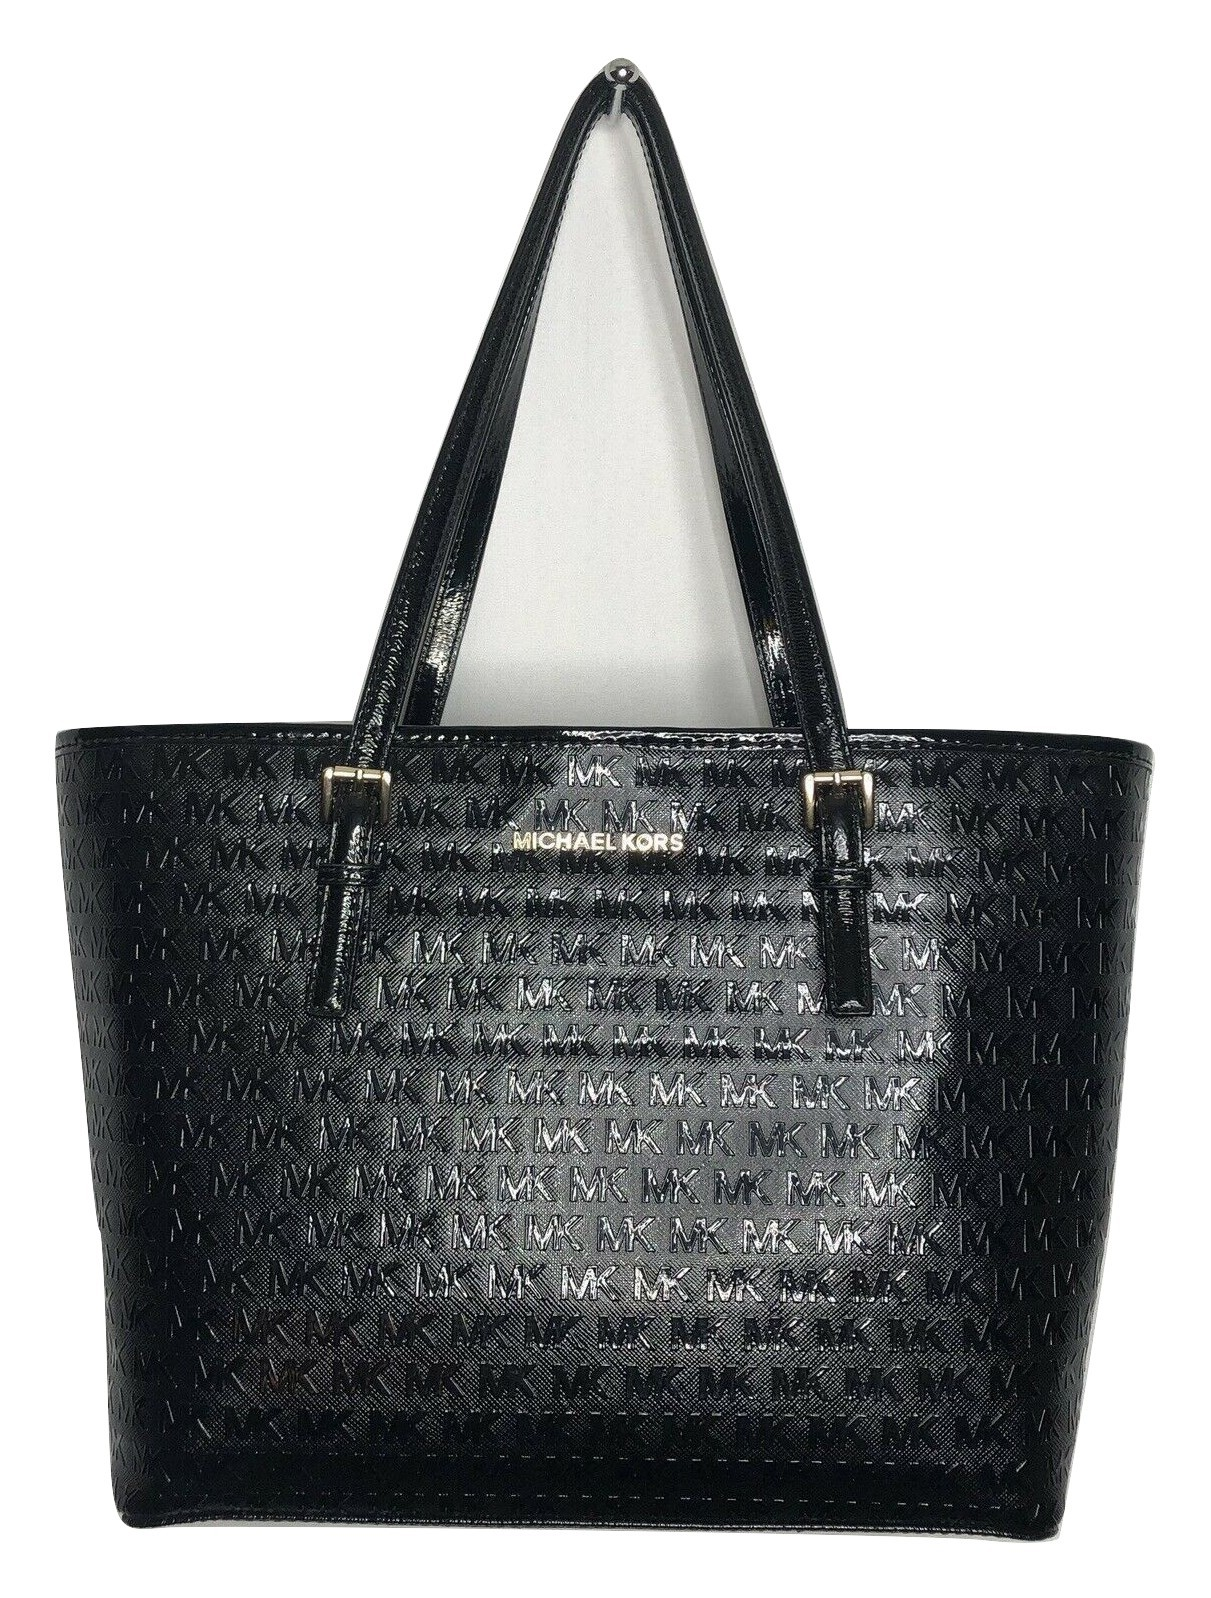 b47d7c33b385 MICHAEL KORS Jet Set Tote Bag Signature Patent Leather Med Carryall Black   248 -  159.64